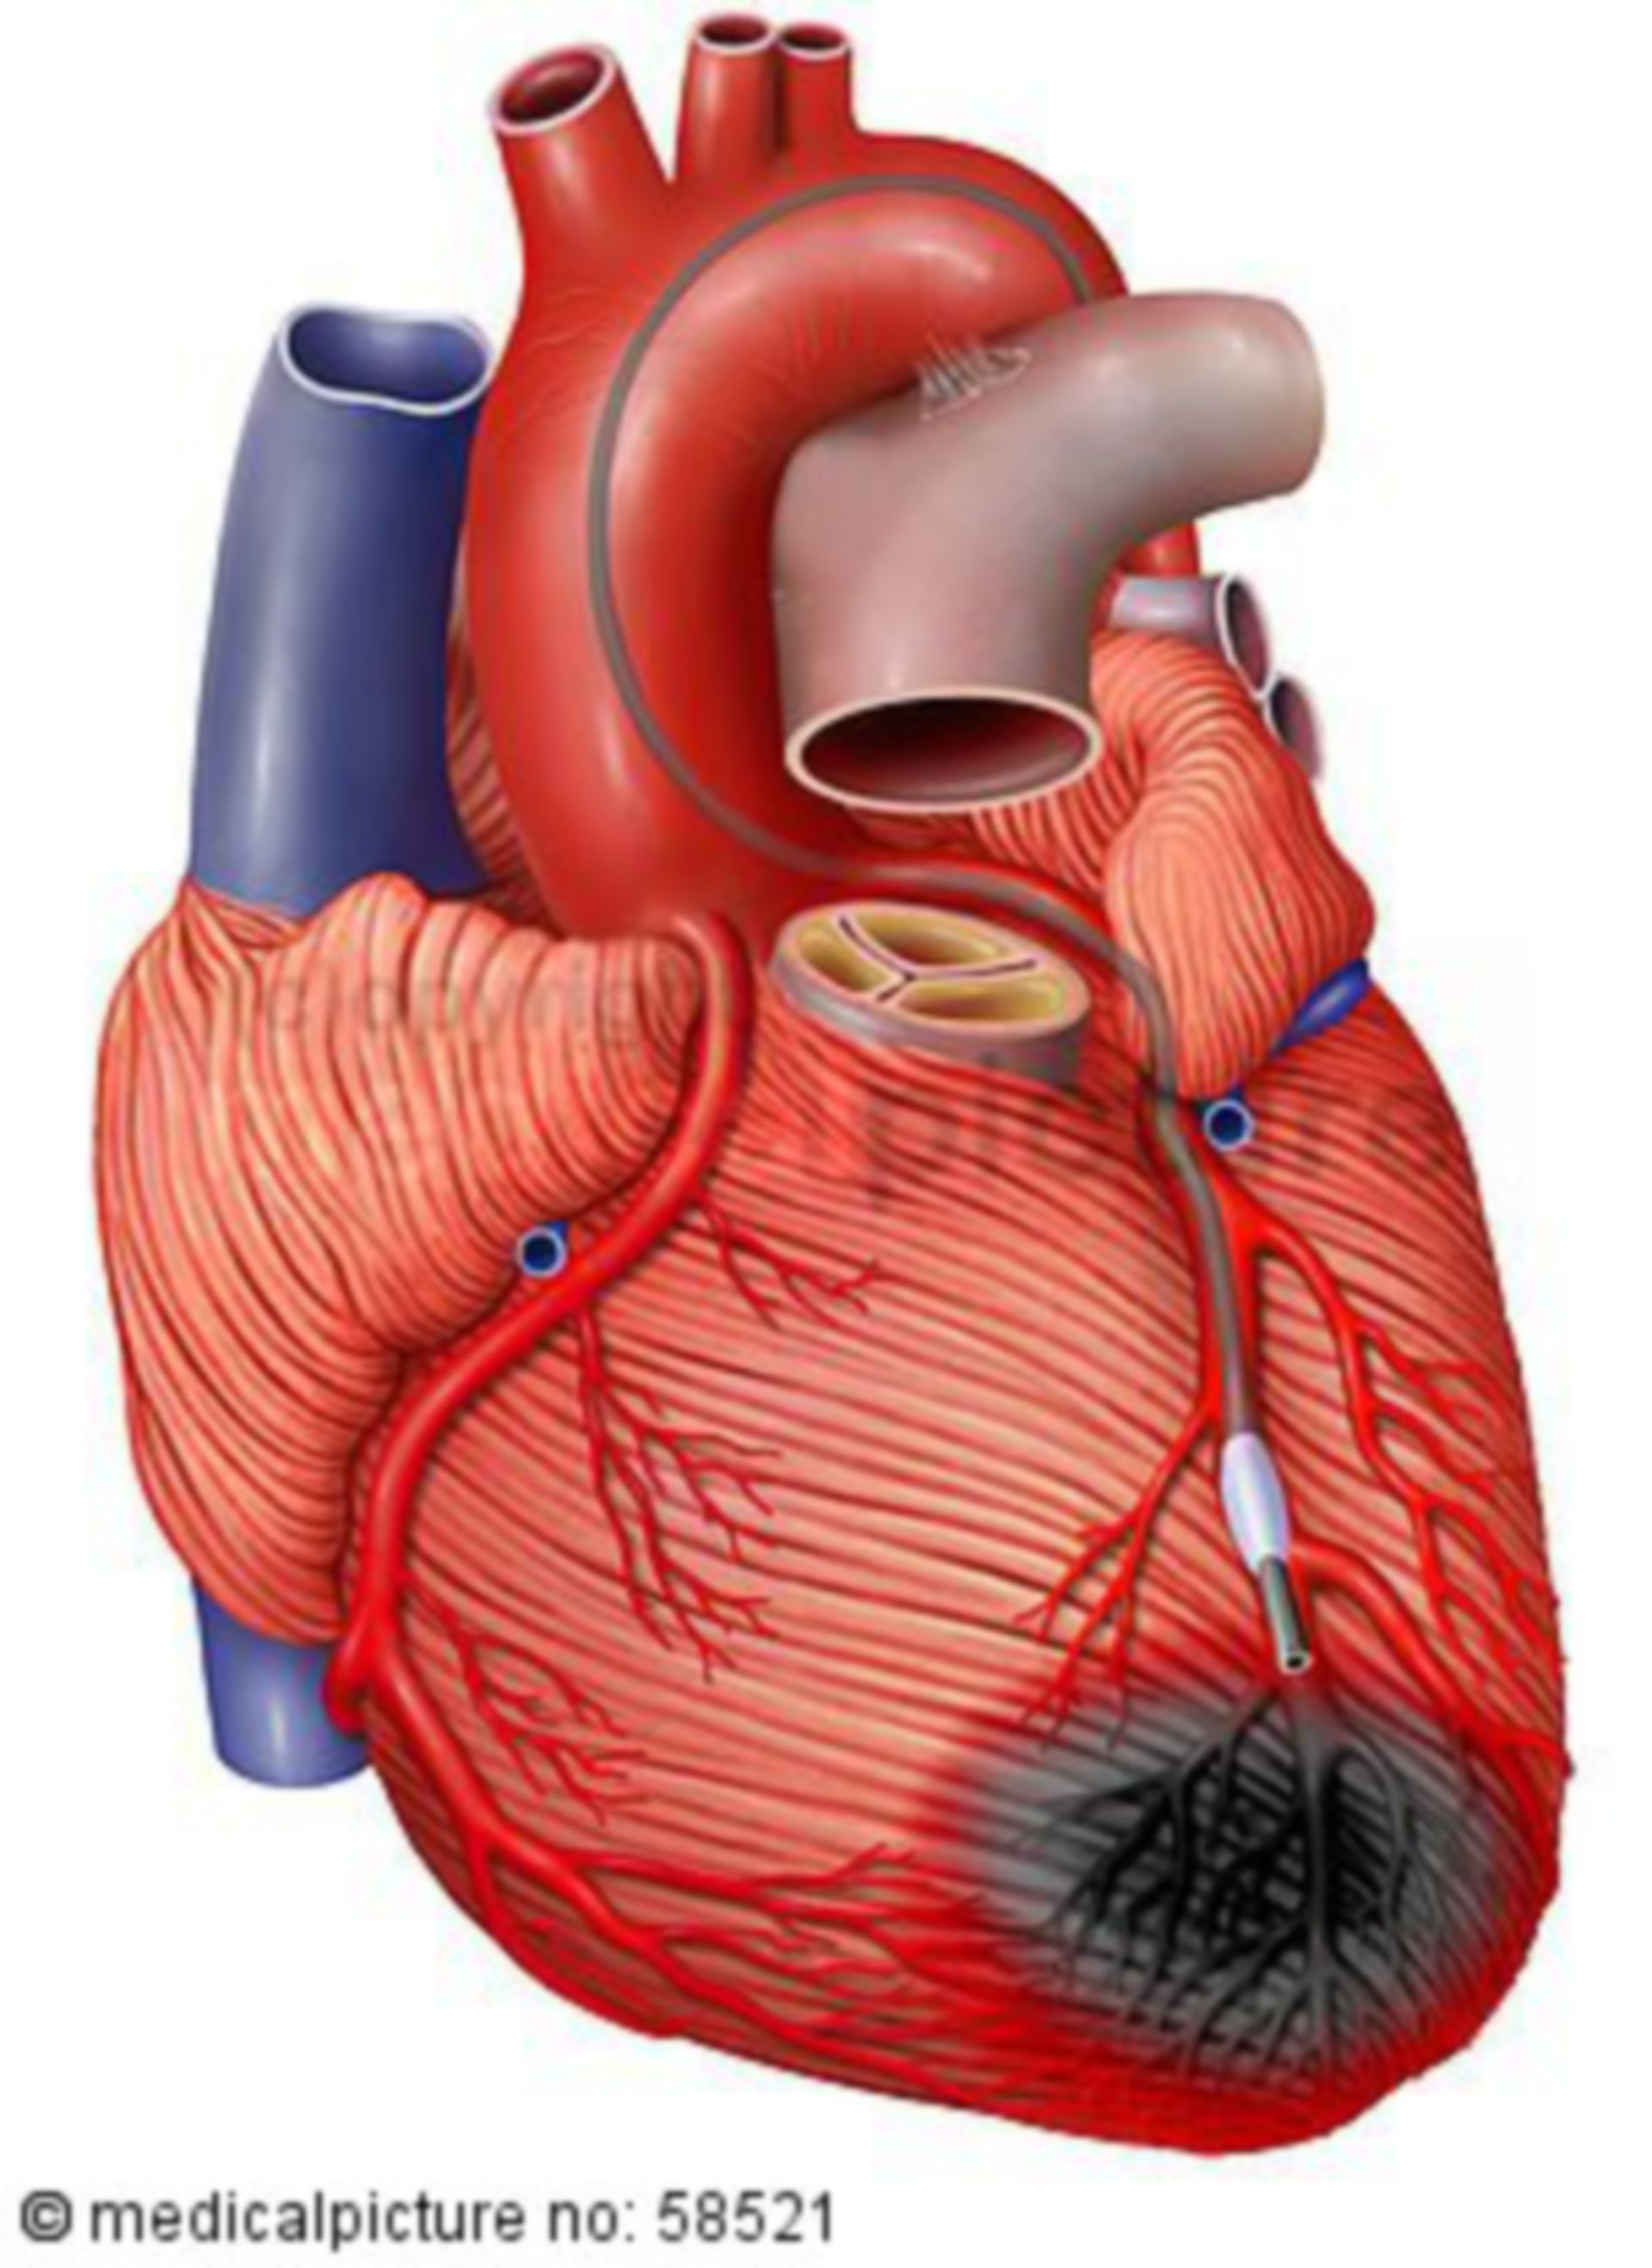 Cardial stem cell therapy